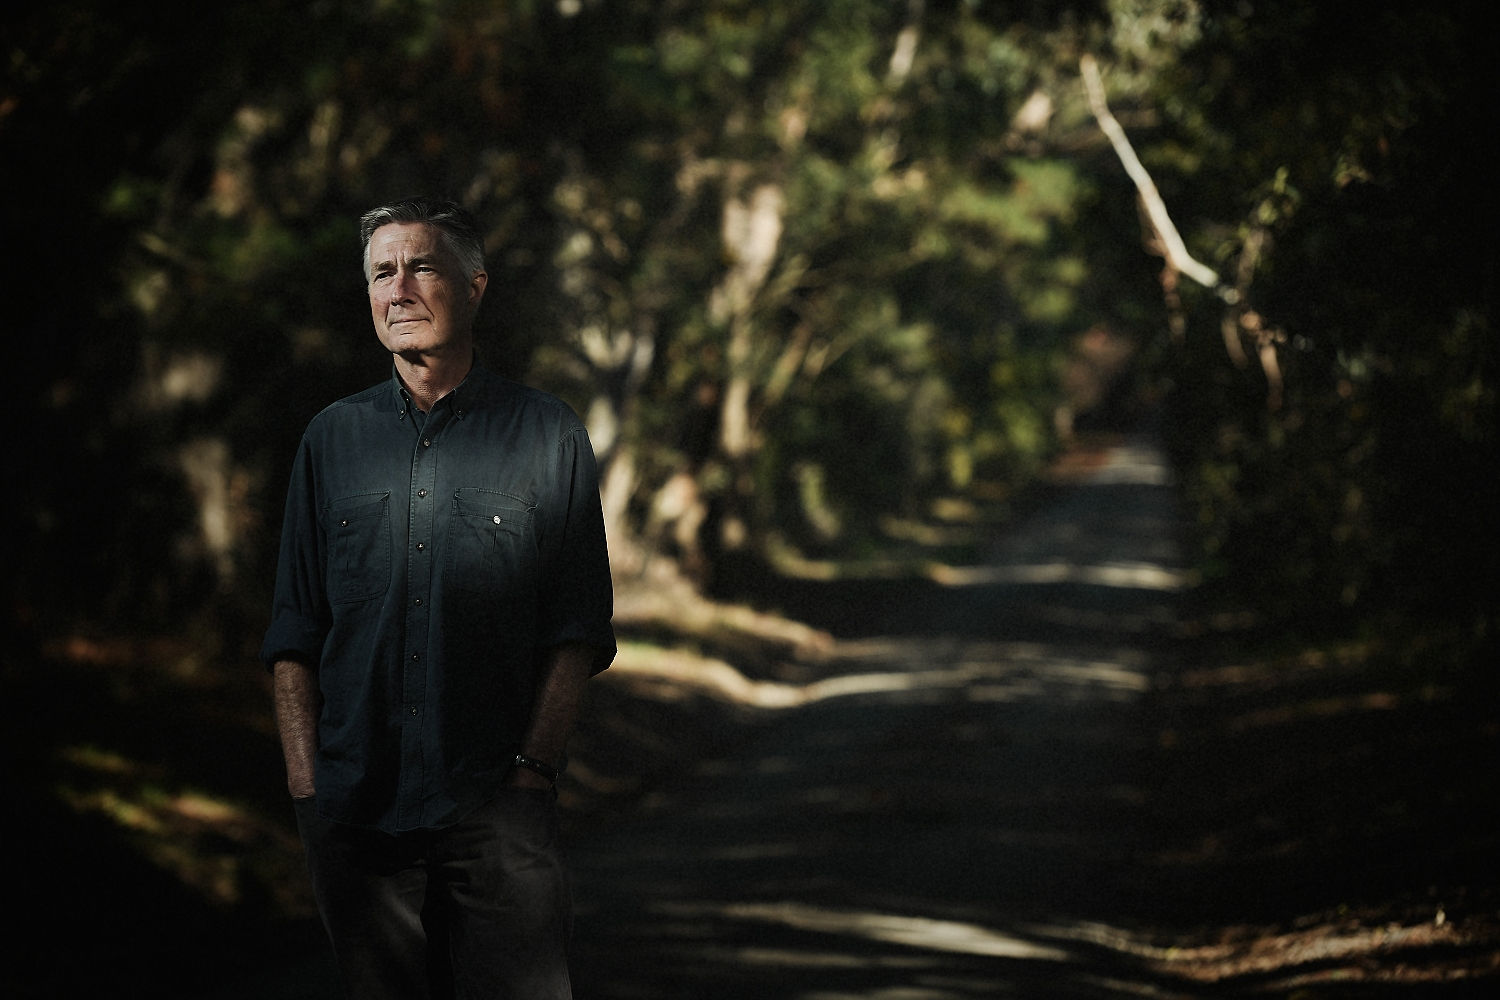 Photo of Garry looking pensive standing in the shadows of a long tree-lined driveway